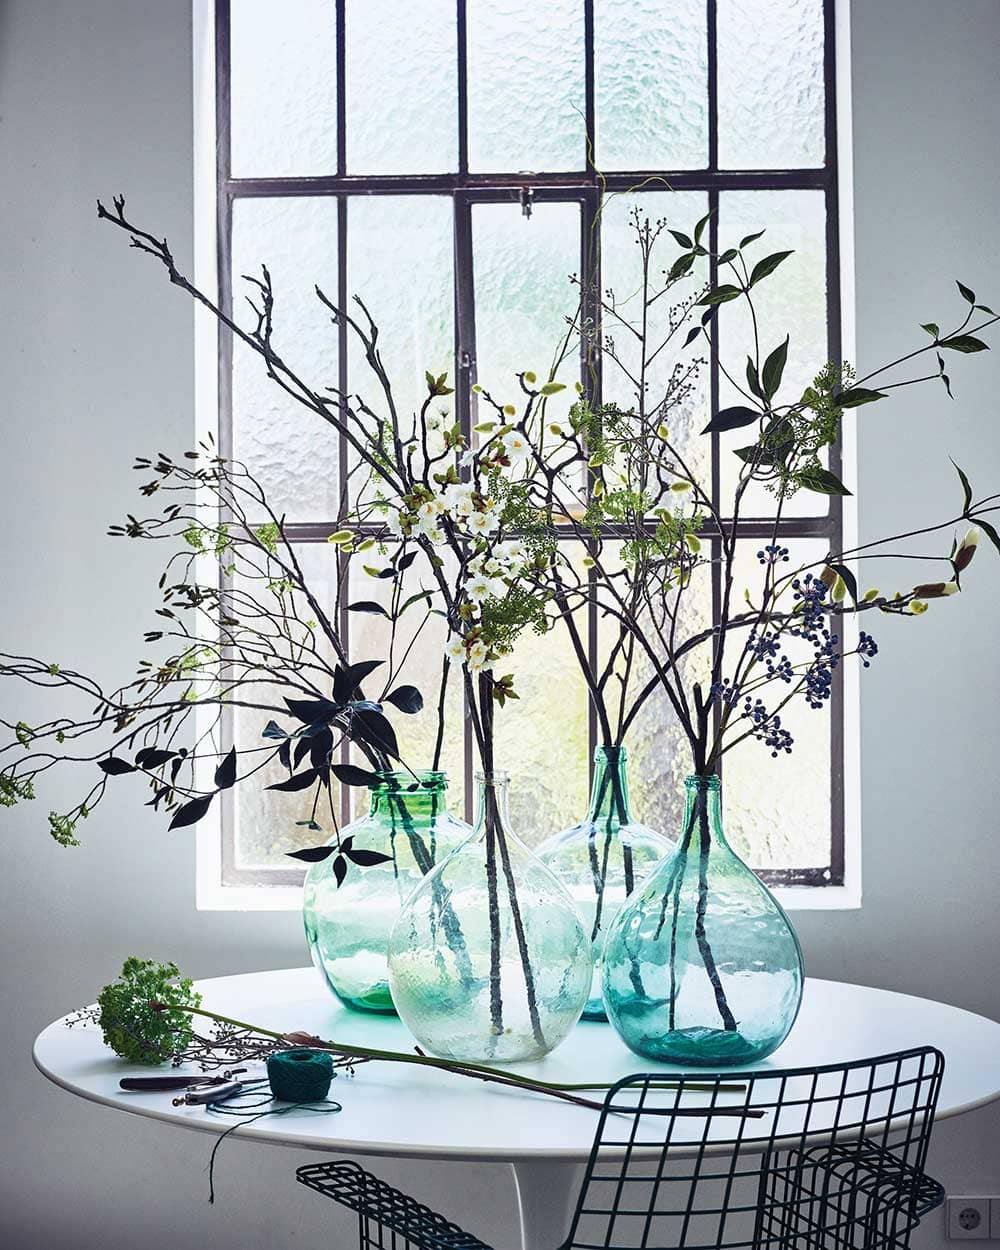 Association de jarres Dame Jeanne translucides avec branches - Decorazine.fr